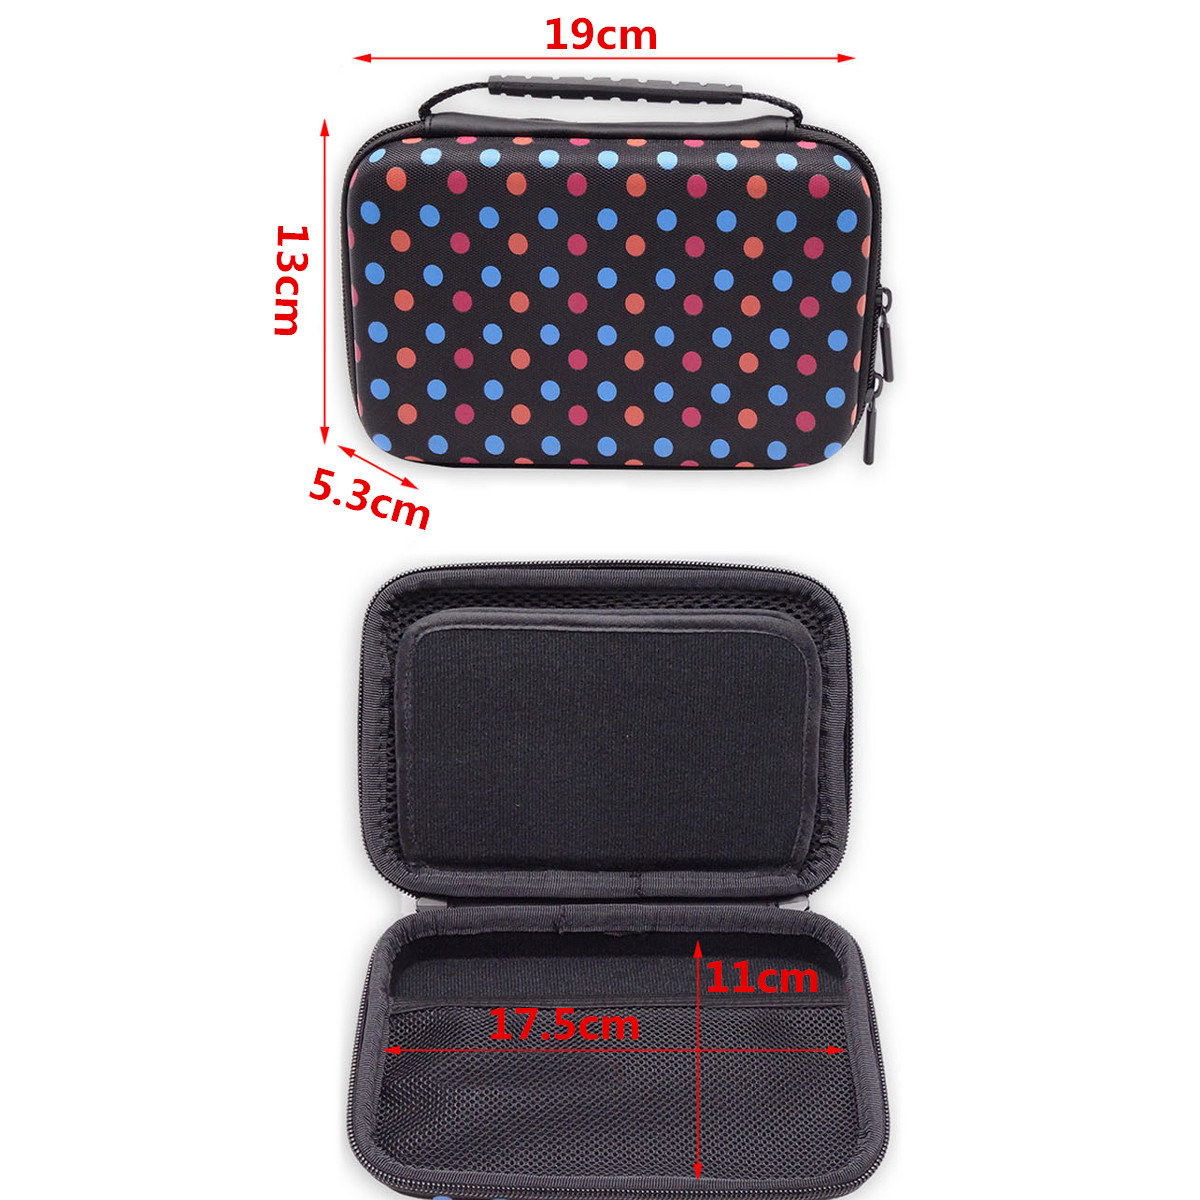 Hard Shell Shockproof Carrying Protective Case EVA Storage Bag Cover for Nintendo Switch 3DS XL 2DS XL Game Console Card Holders